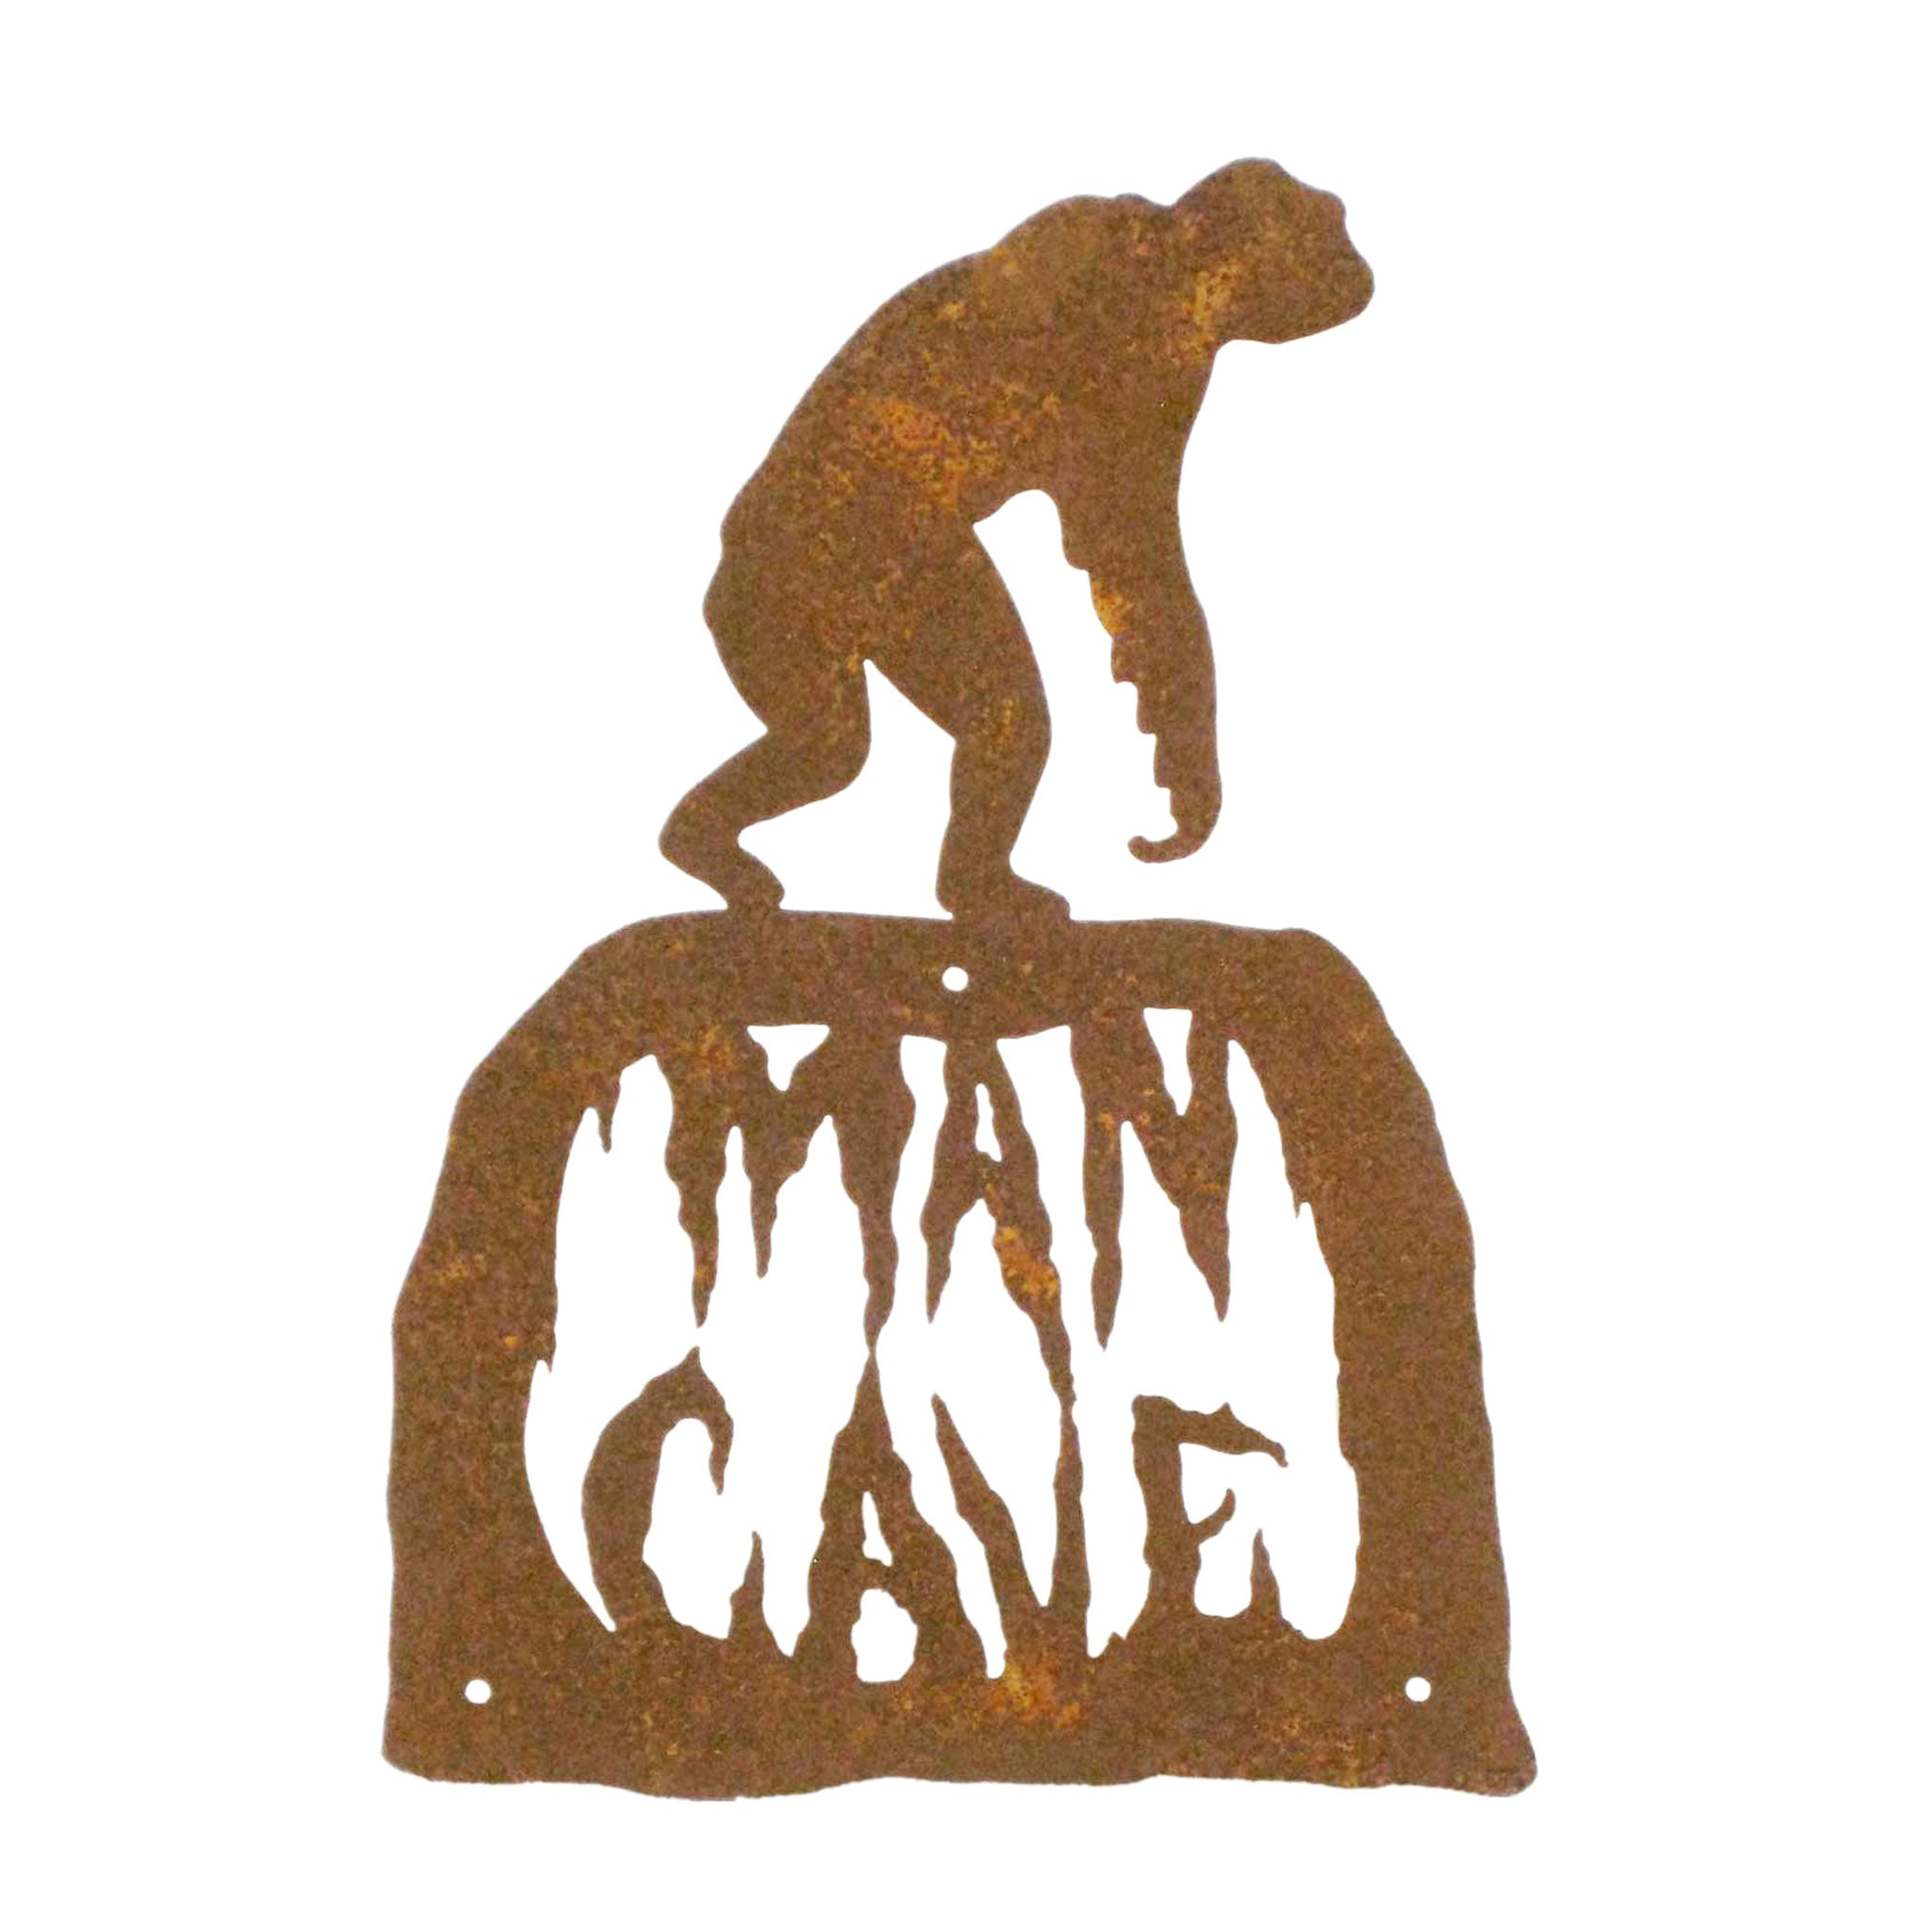 Man Cave Wall Mount Sign